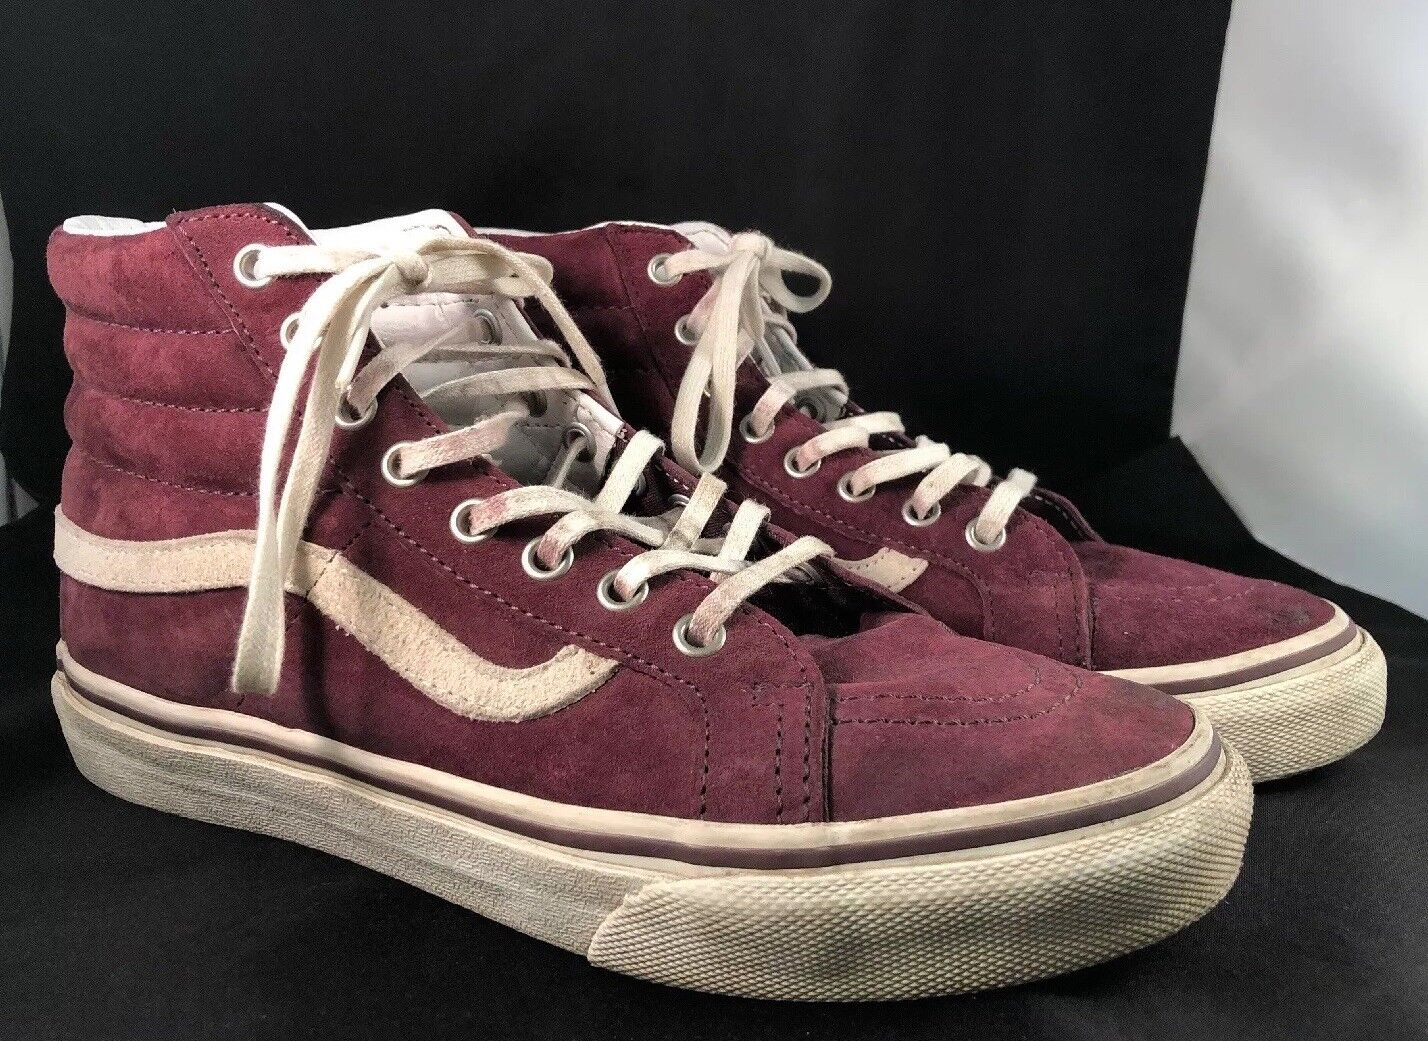 4bcfdf097d Vans Maroon SK8 High Men Size 4.5 Vintage IFC Soles Leather Suede Used Tops  nuogxi2974-Athletic Shoes